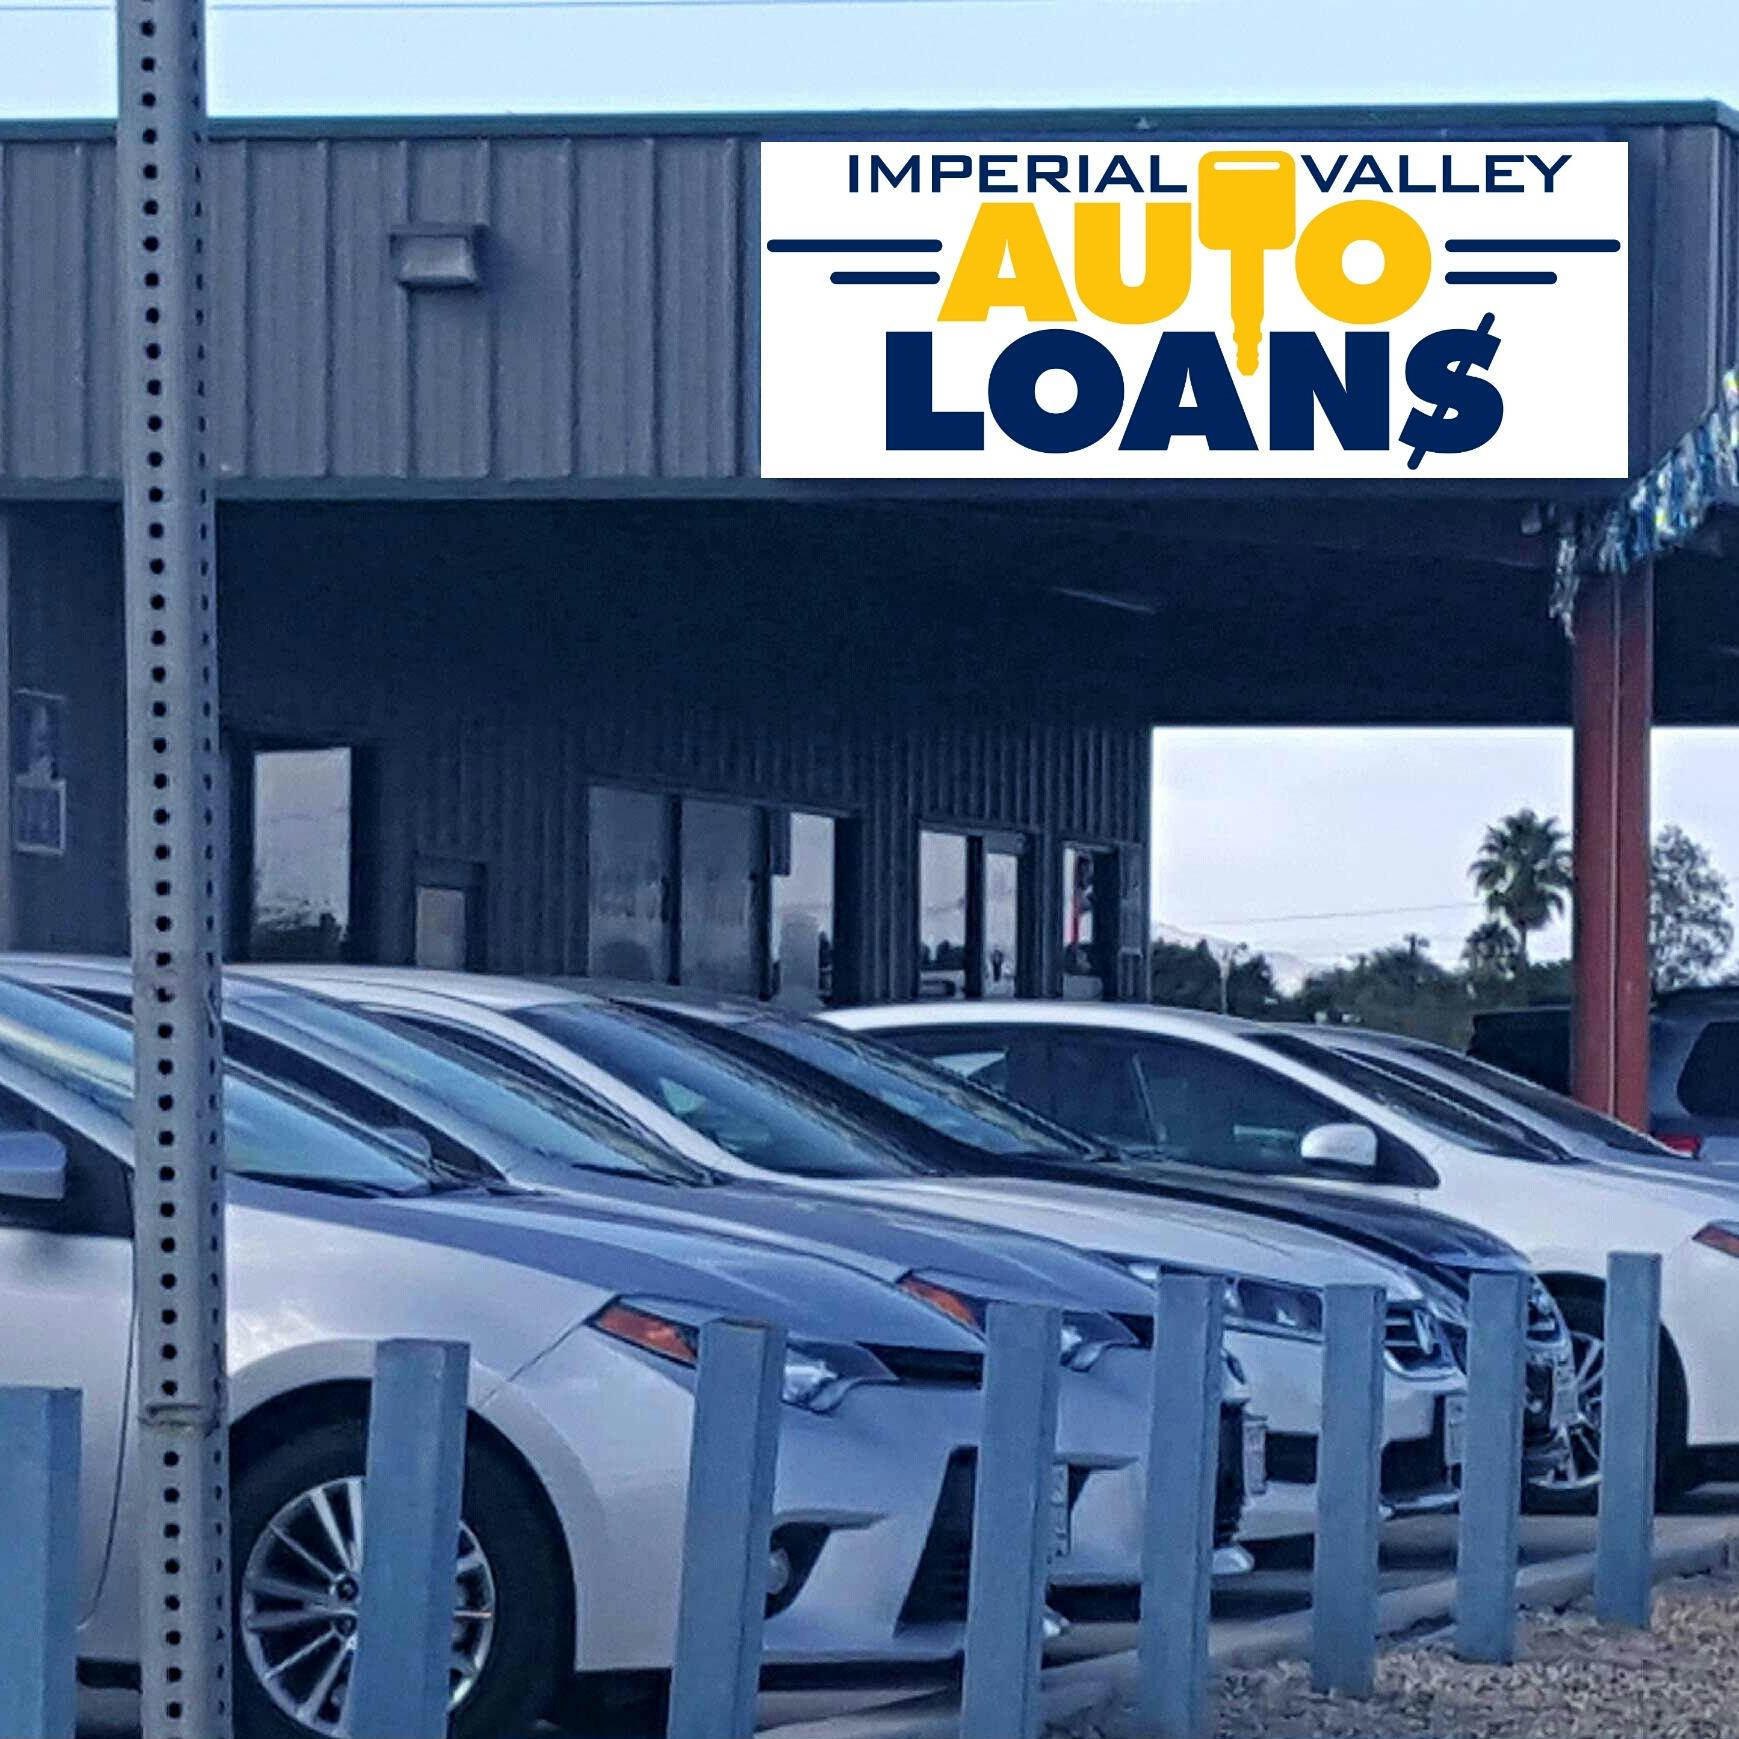 Imperial Valley Loan Center image 11